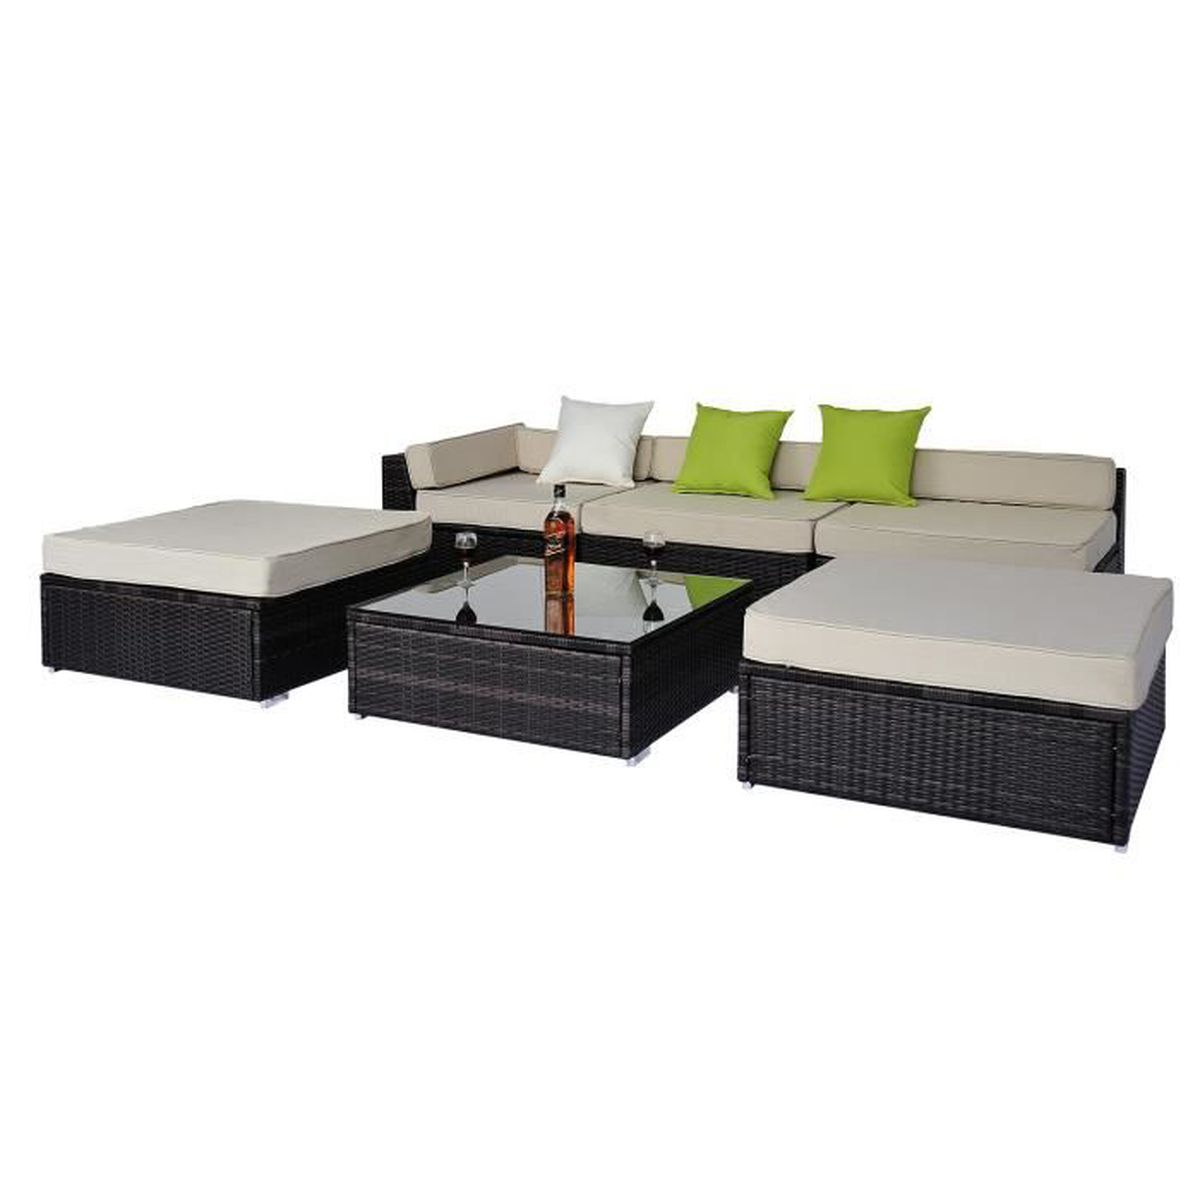 Salon De Jardin Complet Modulable Canap S Poufs Et Table